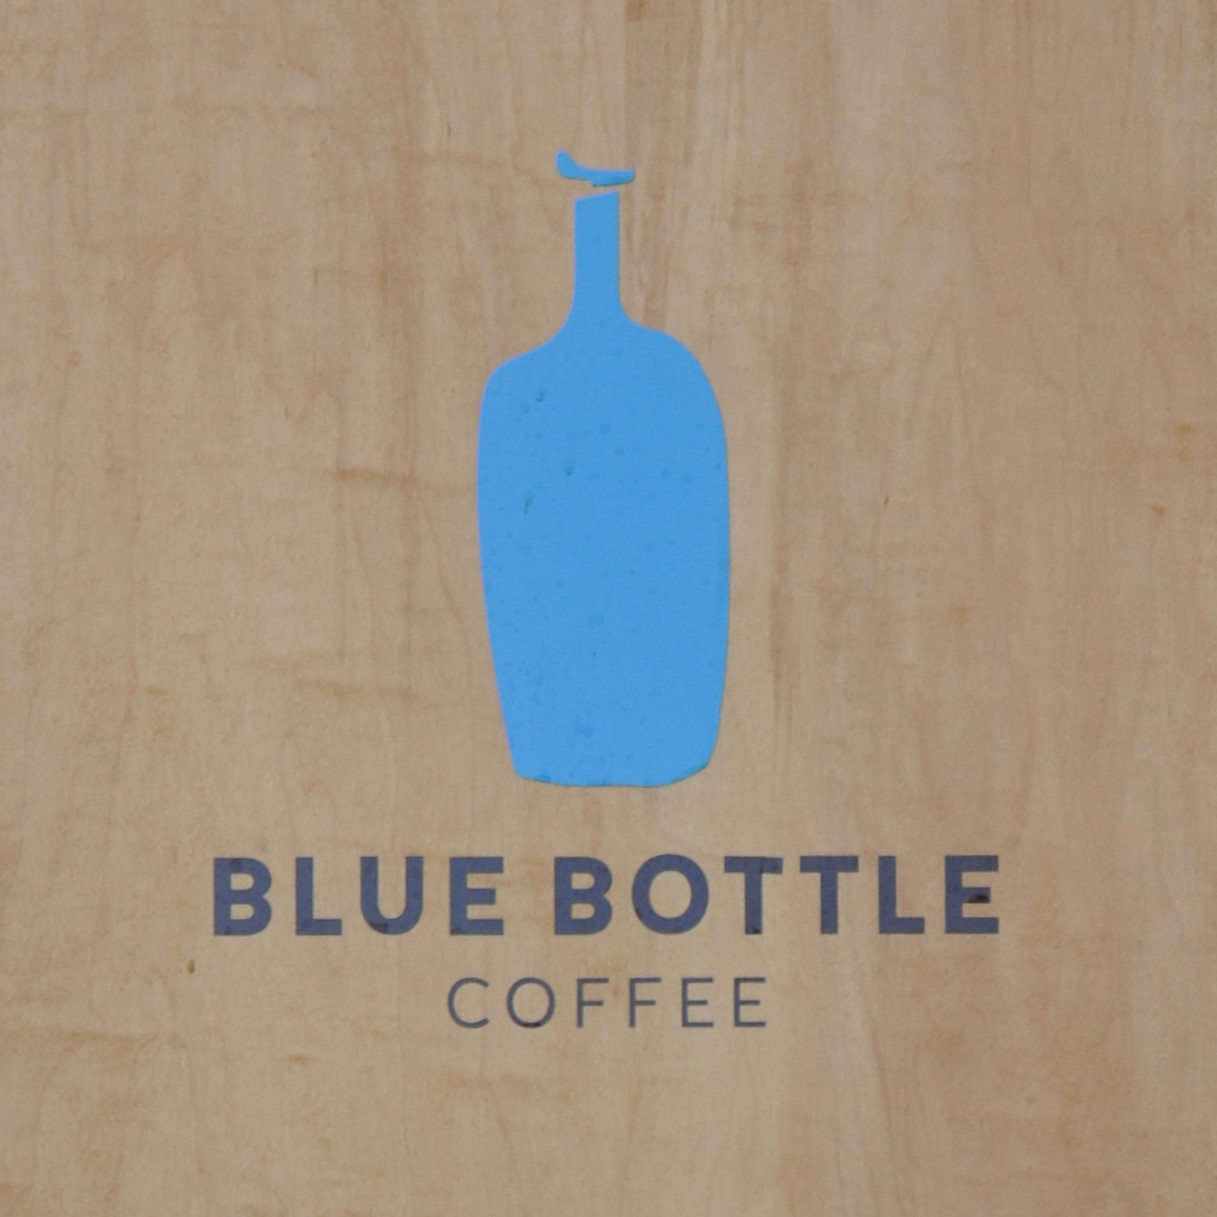 """The Blue Bottle Coffee logo from the A-board outside the Chelsea coffee shop: the outline of a bottle painted in solid blue above the words """"Blue Bottle Coffee""""."""